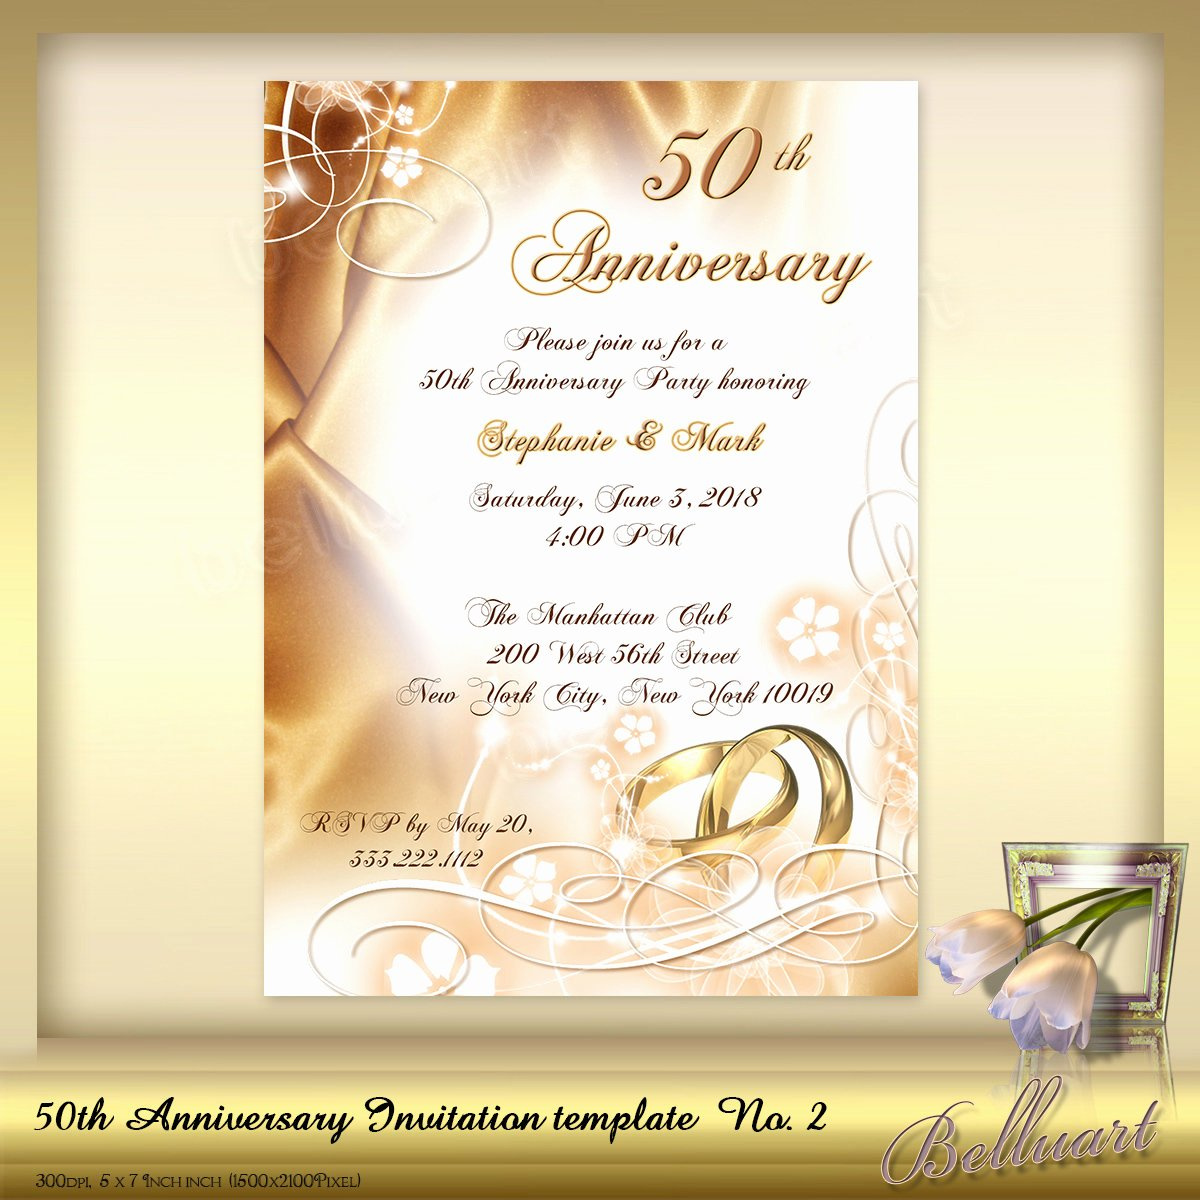 50th anniversary invitation template no2